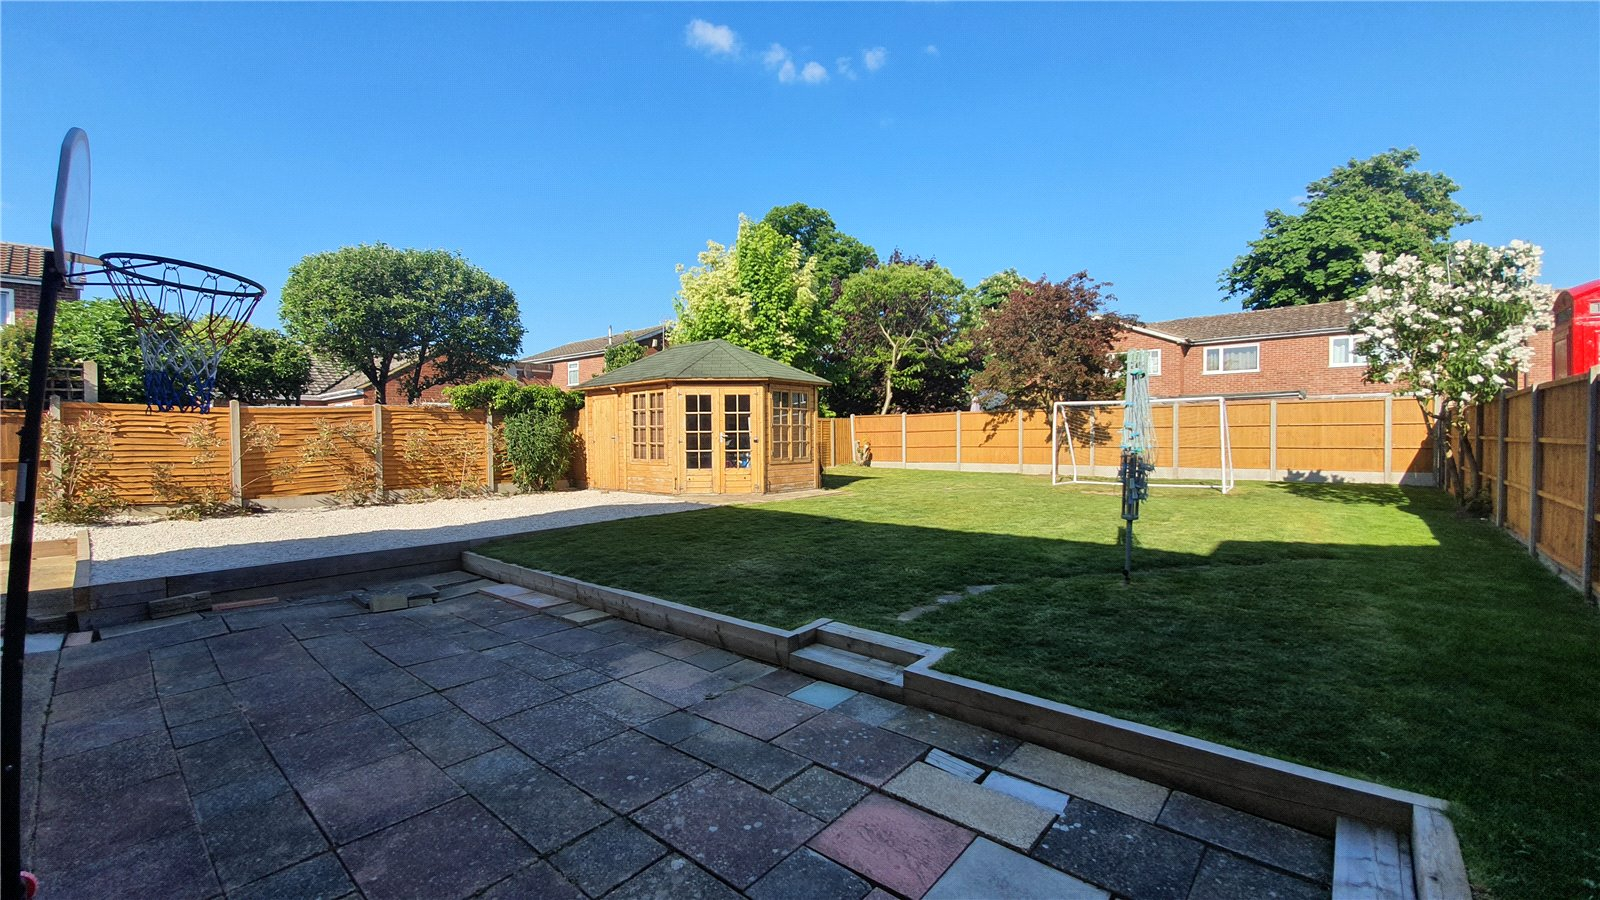 3 bed house for sale in The Sycamores, Little Paxton  - Property Image 13